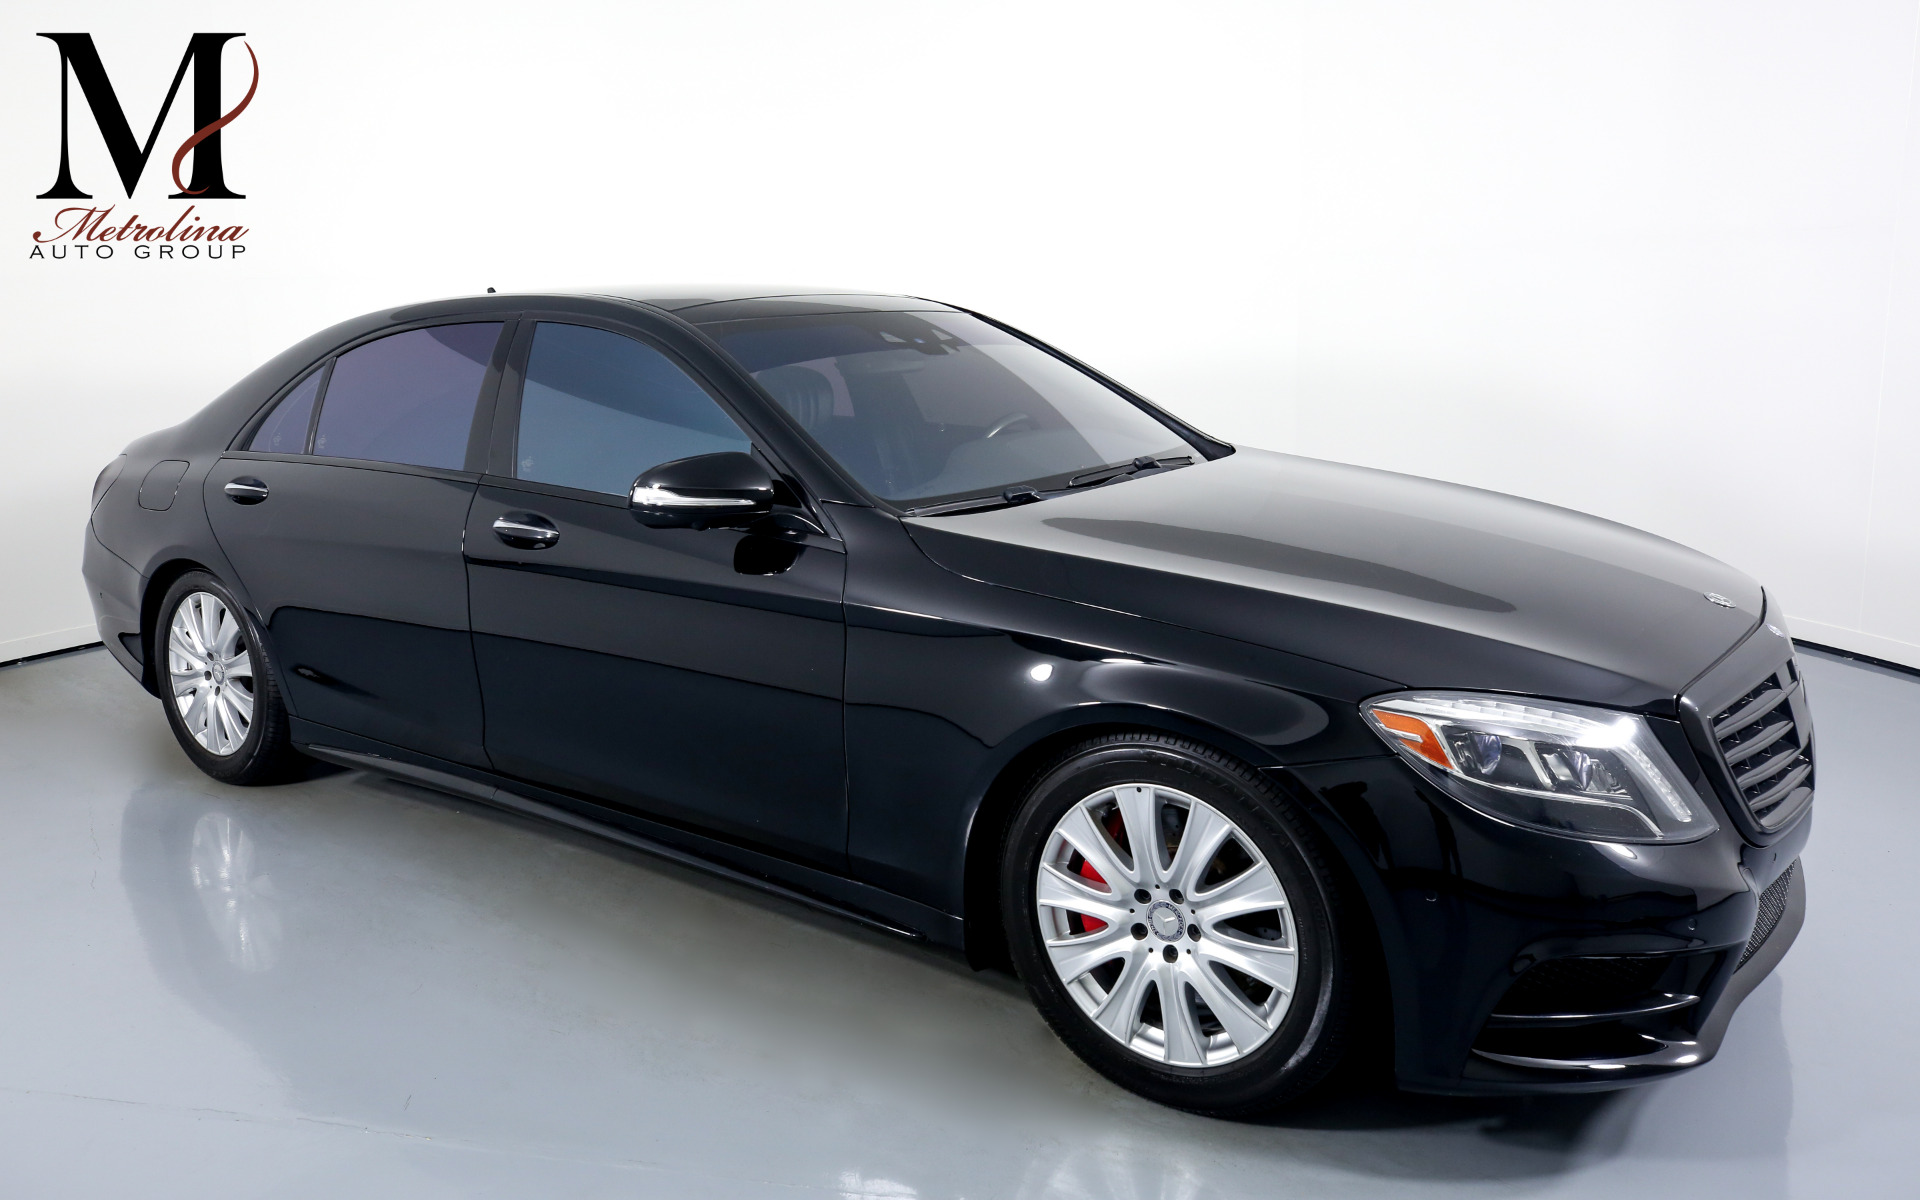 Used 2017 Mercedes-Benz S-Class S 550 for sale Call for price at Metrolina Auto Group in Charlotte NC 28217 - 1